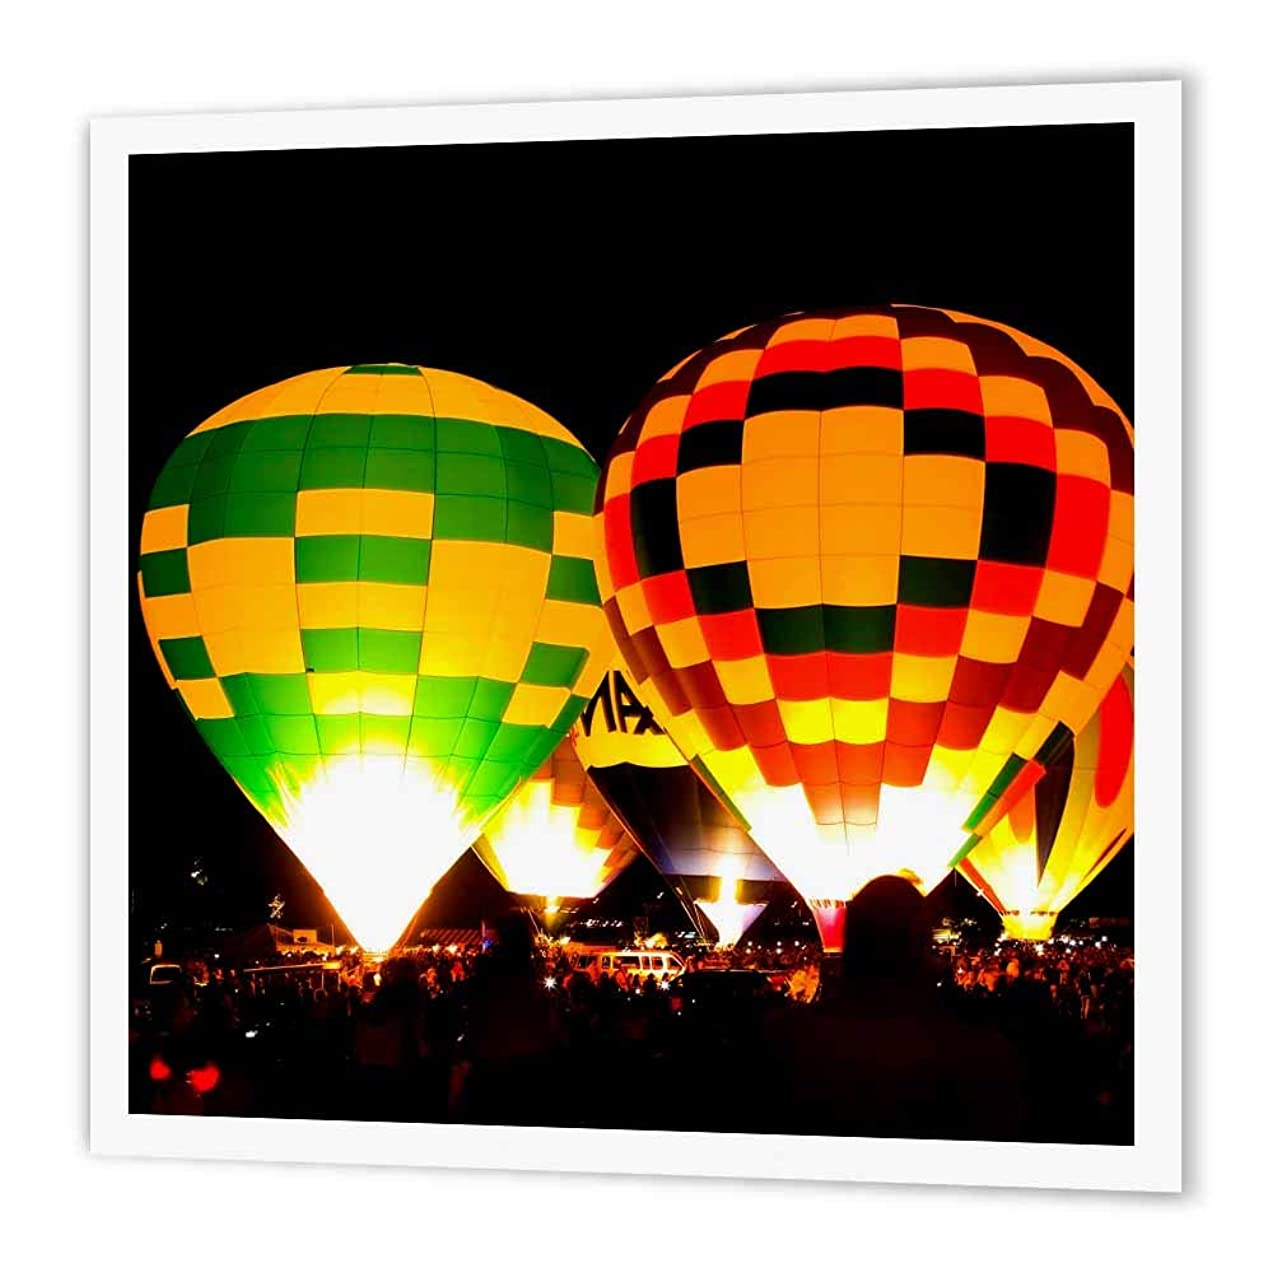 3dRose ht_119894_3 Hot Air Balloons Glowing at Night Iron on Heat Transfer Paper for White Material, 10 by 10